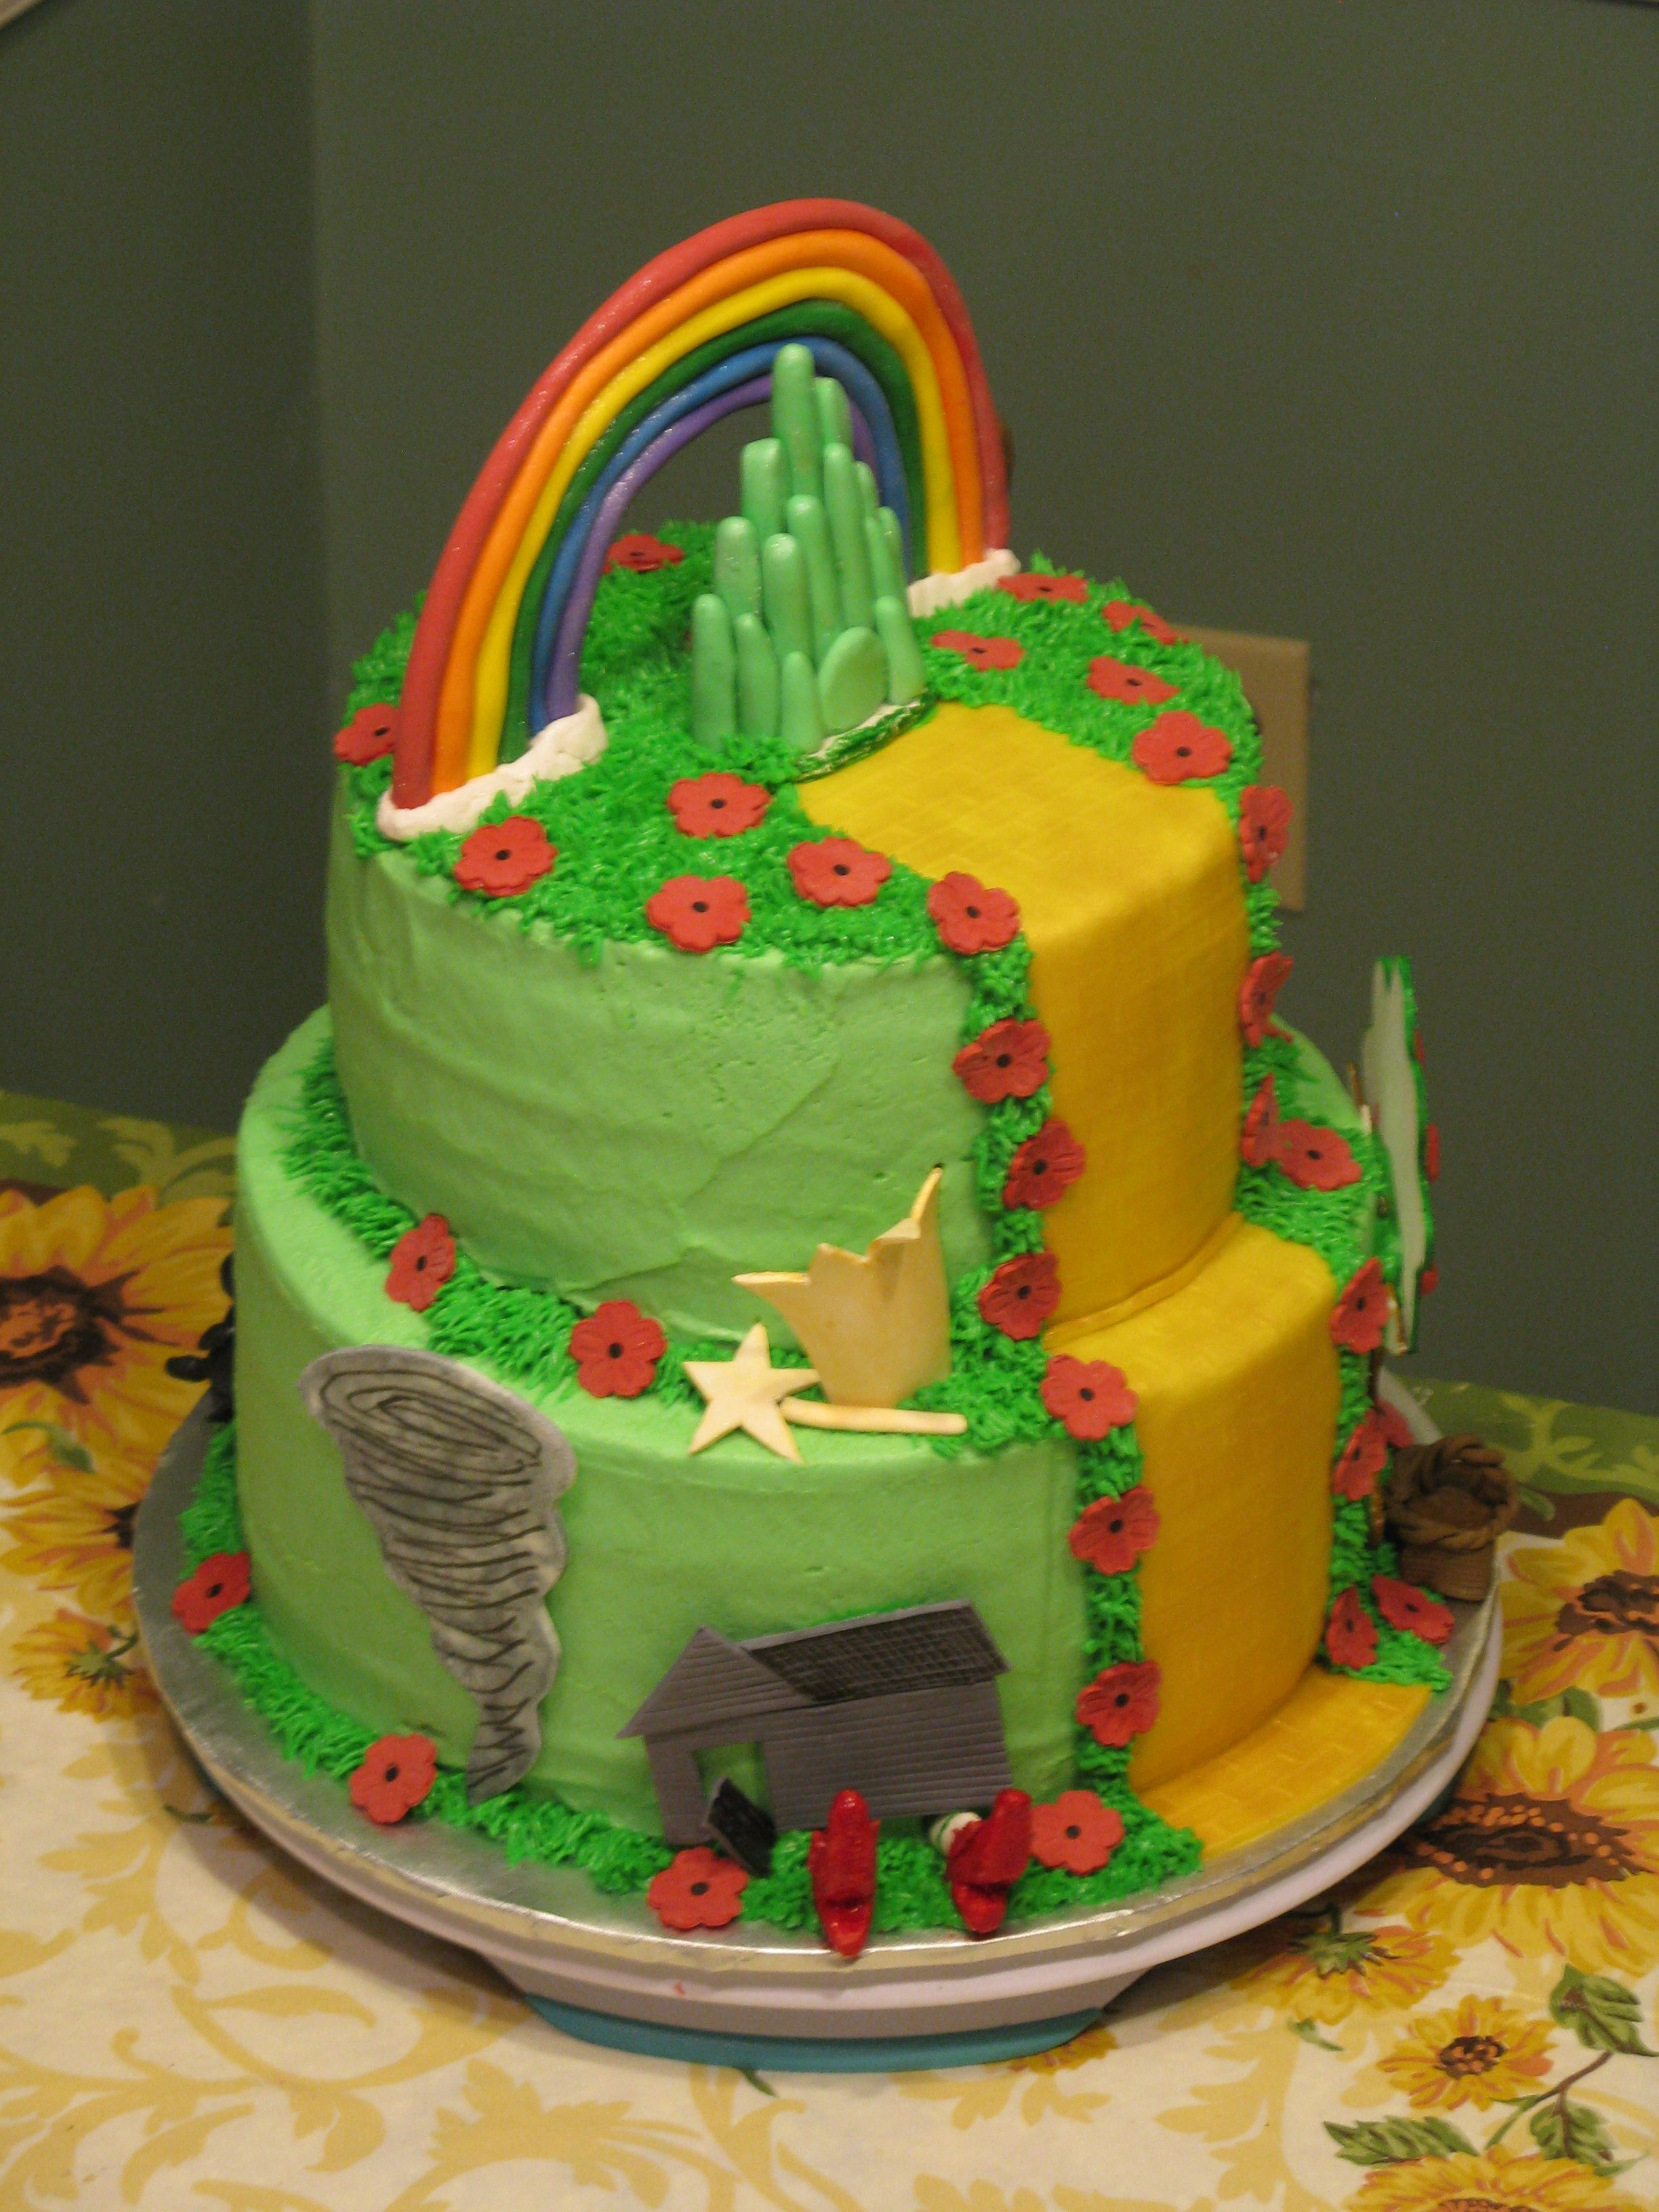 Cake Decorations For Wizard Of Oz : Wizard of Oz cake Party Girl Pinterest